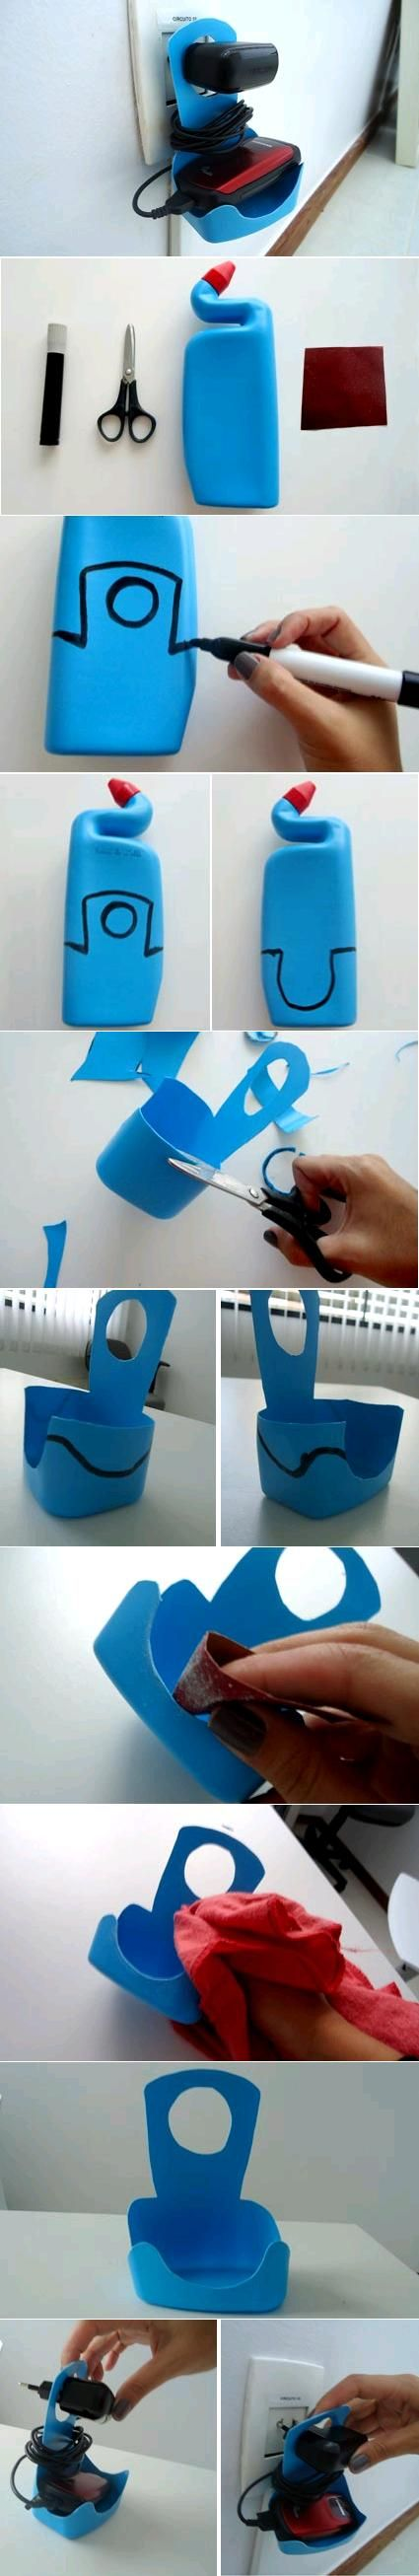 DIY Plastic Bottle Cell Phone Charger Holder | iCreativeIdeas.com LIKE Us on Facebook ==> https://www.facebook.com/icreativeideas